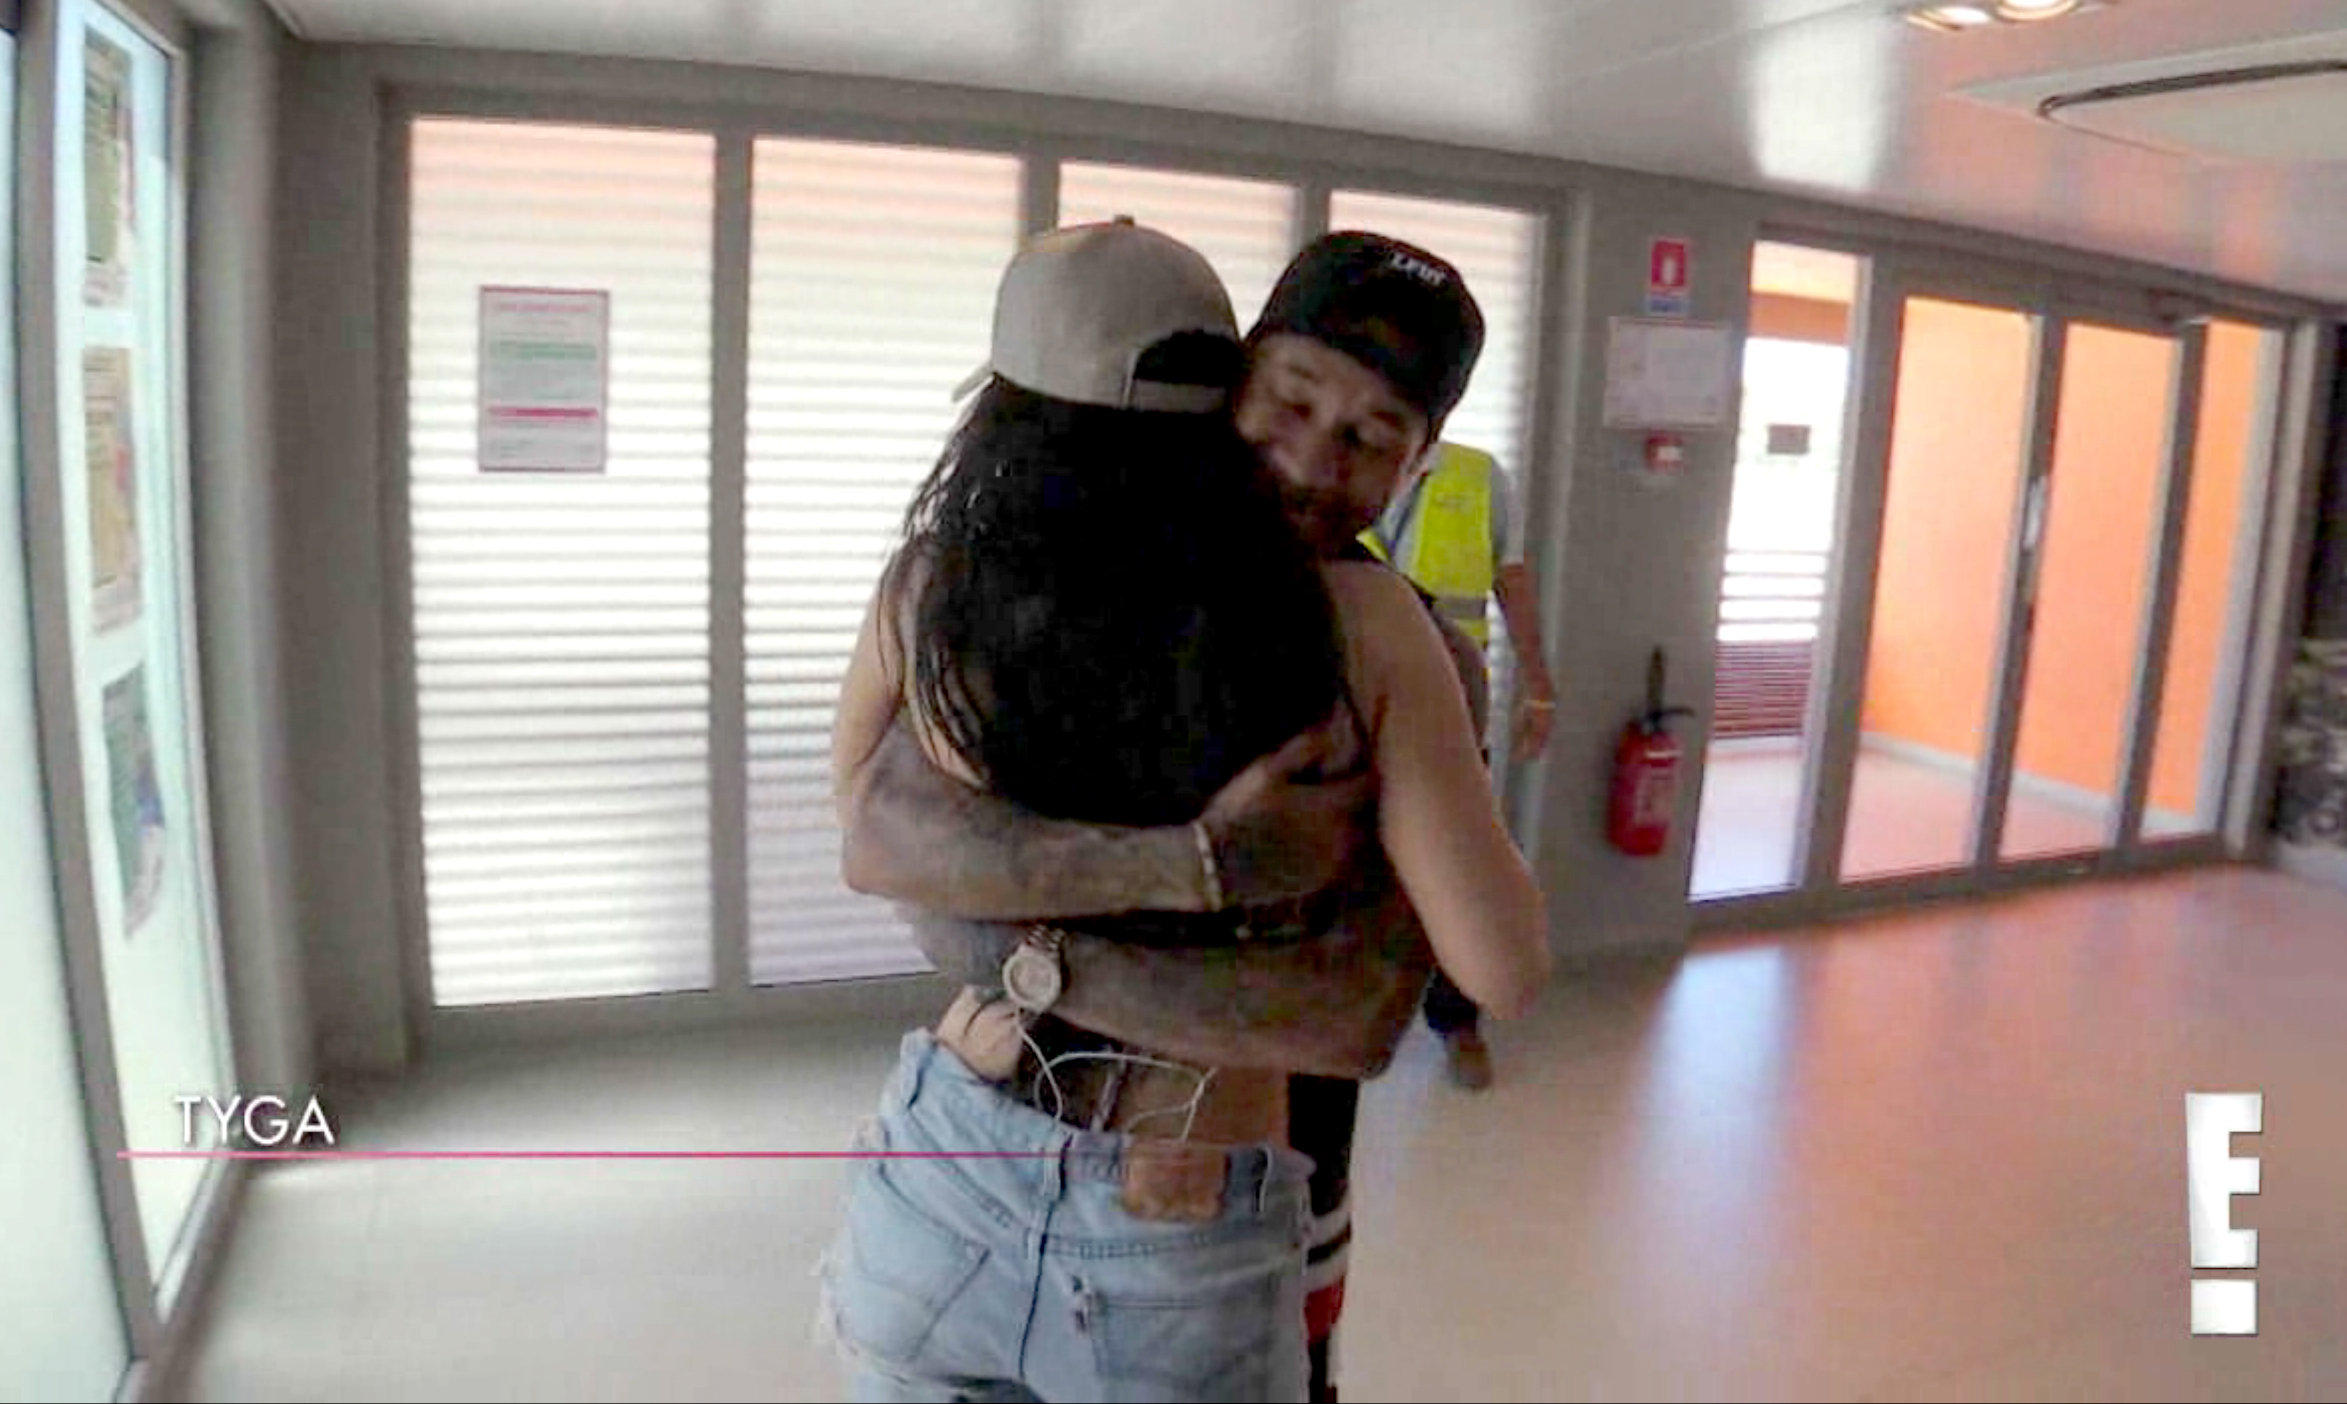 Kylie embraces Tyga.